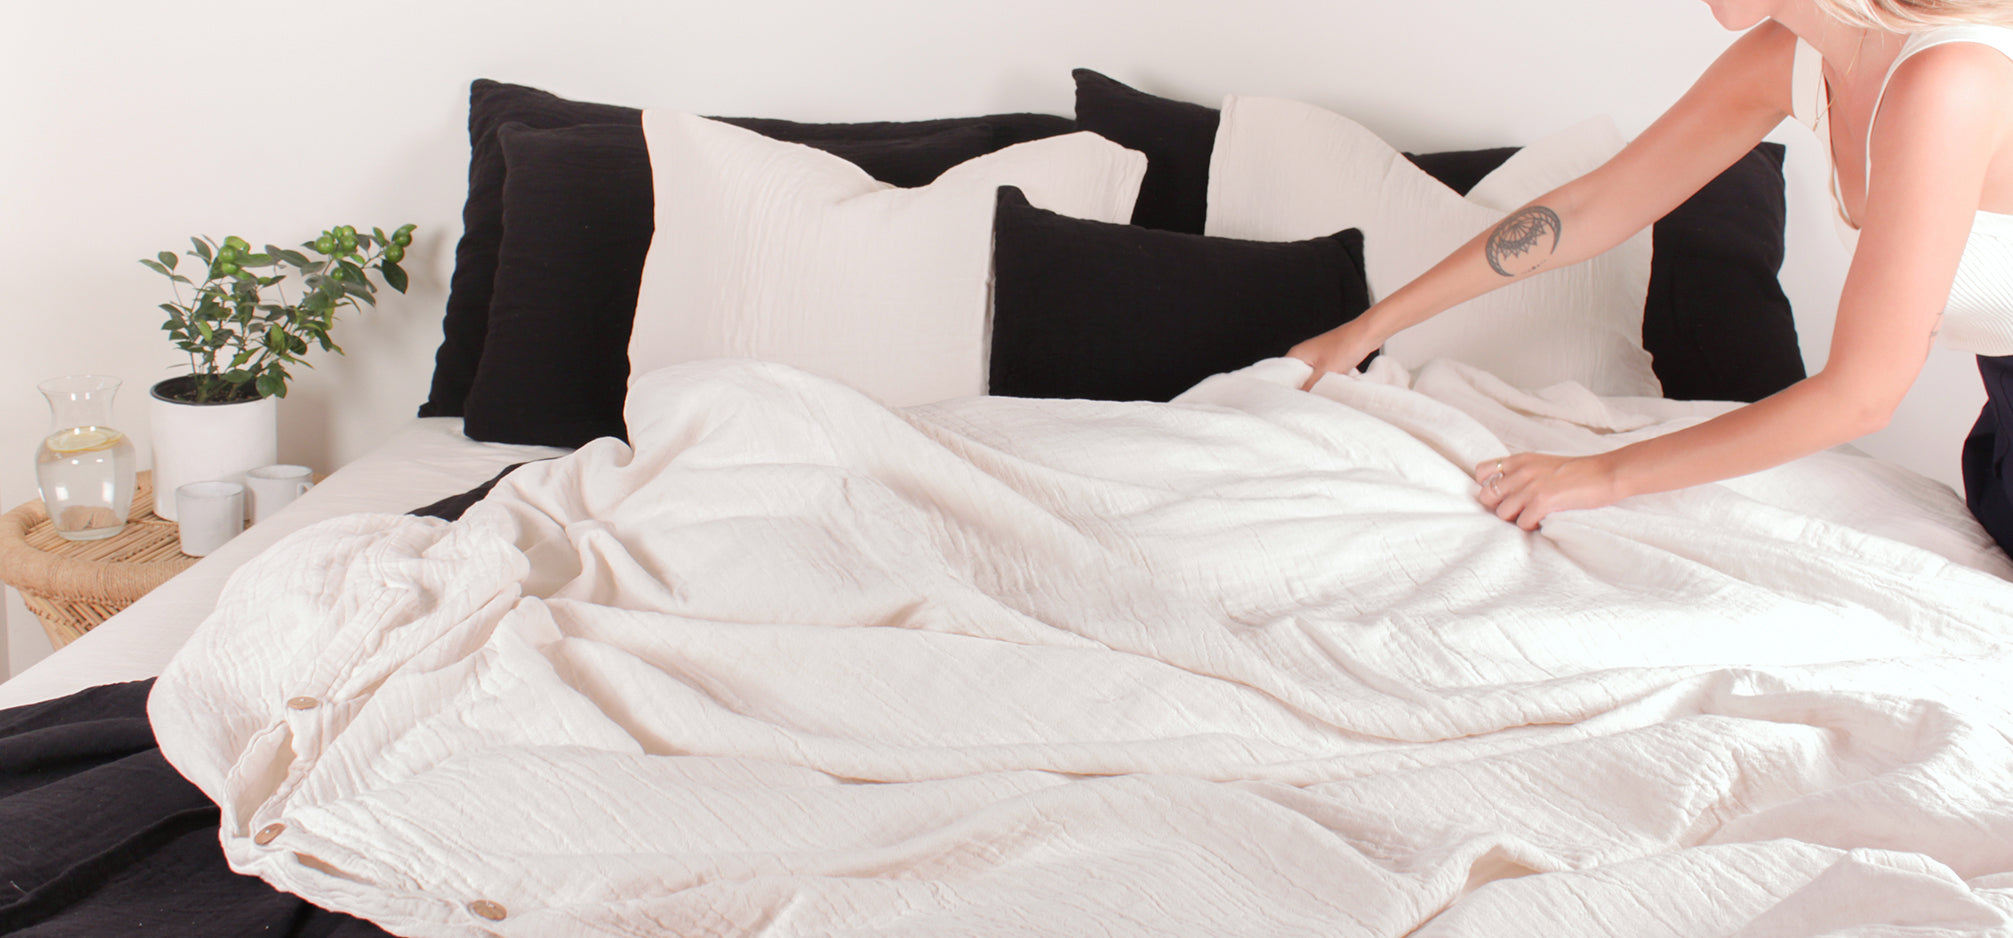 A woman making a bed with black and white bed linens.